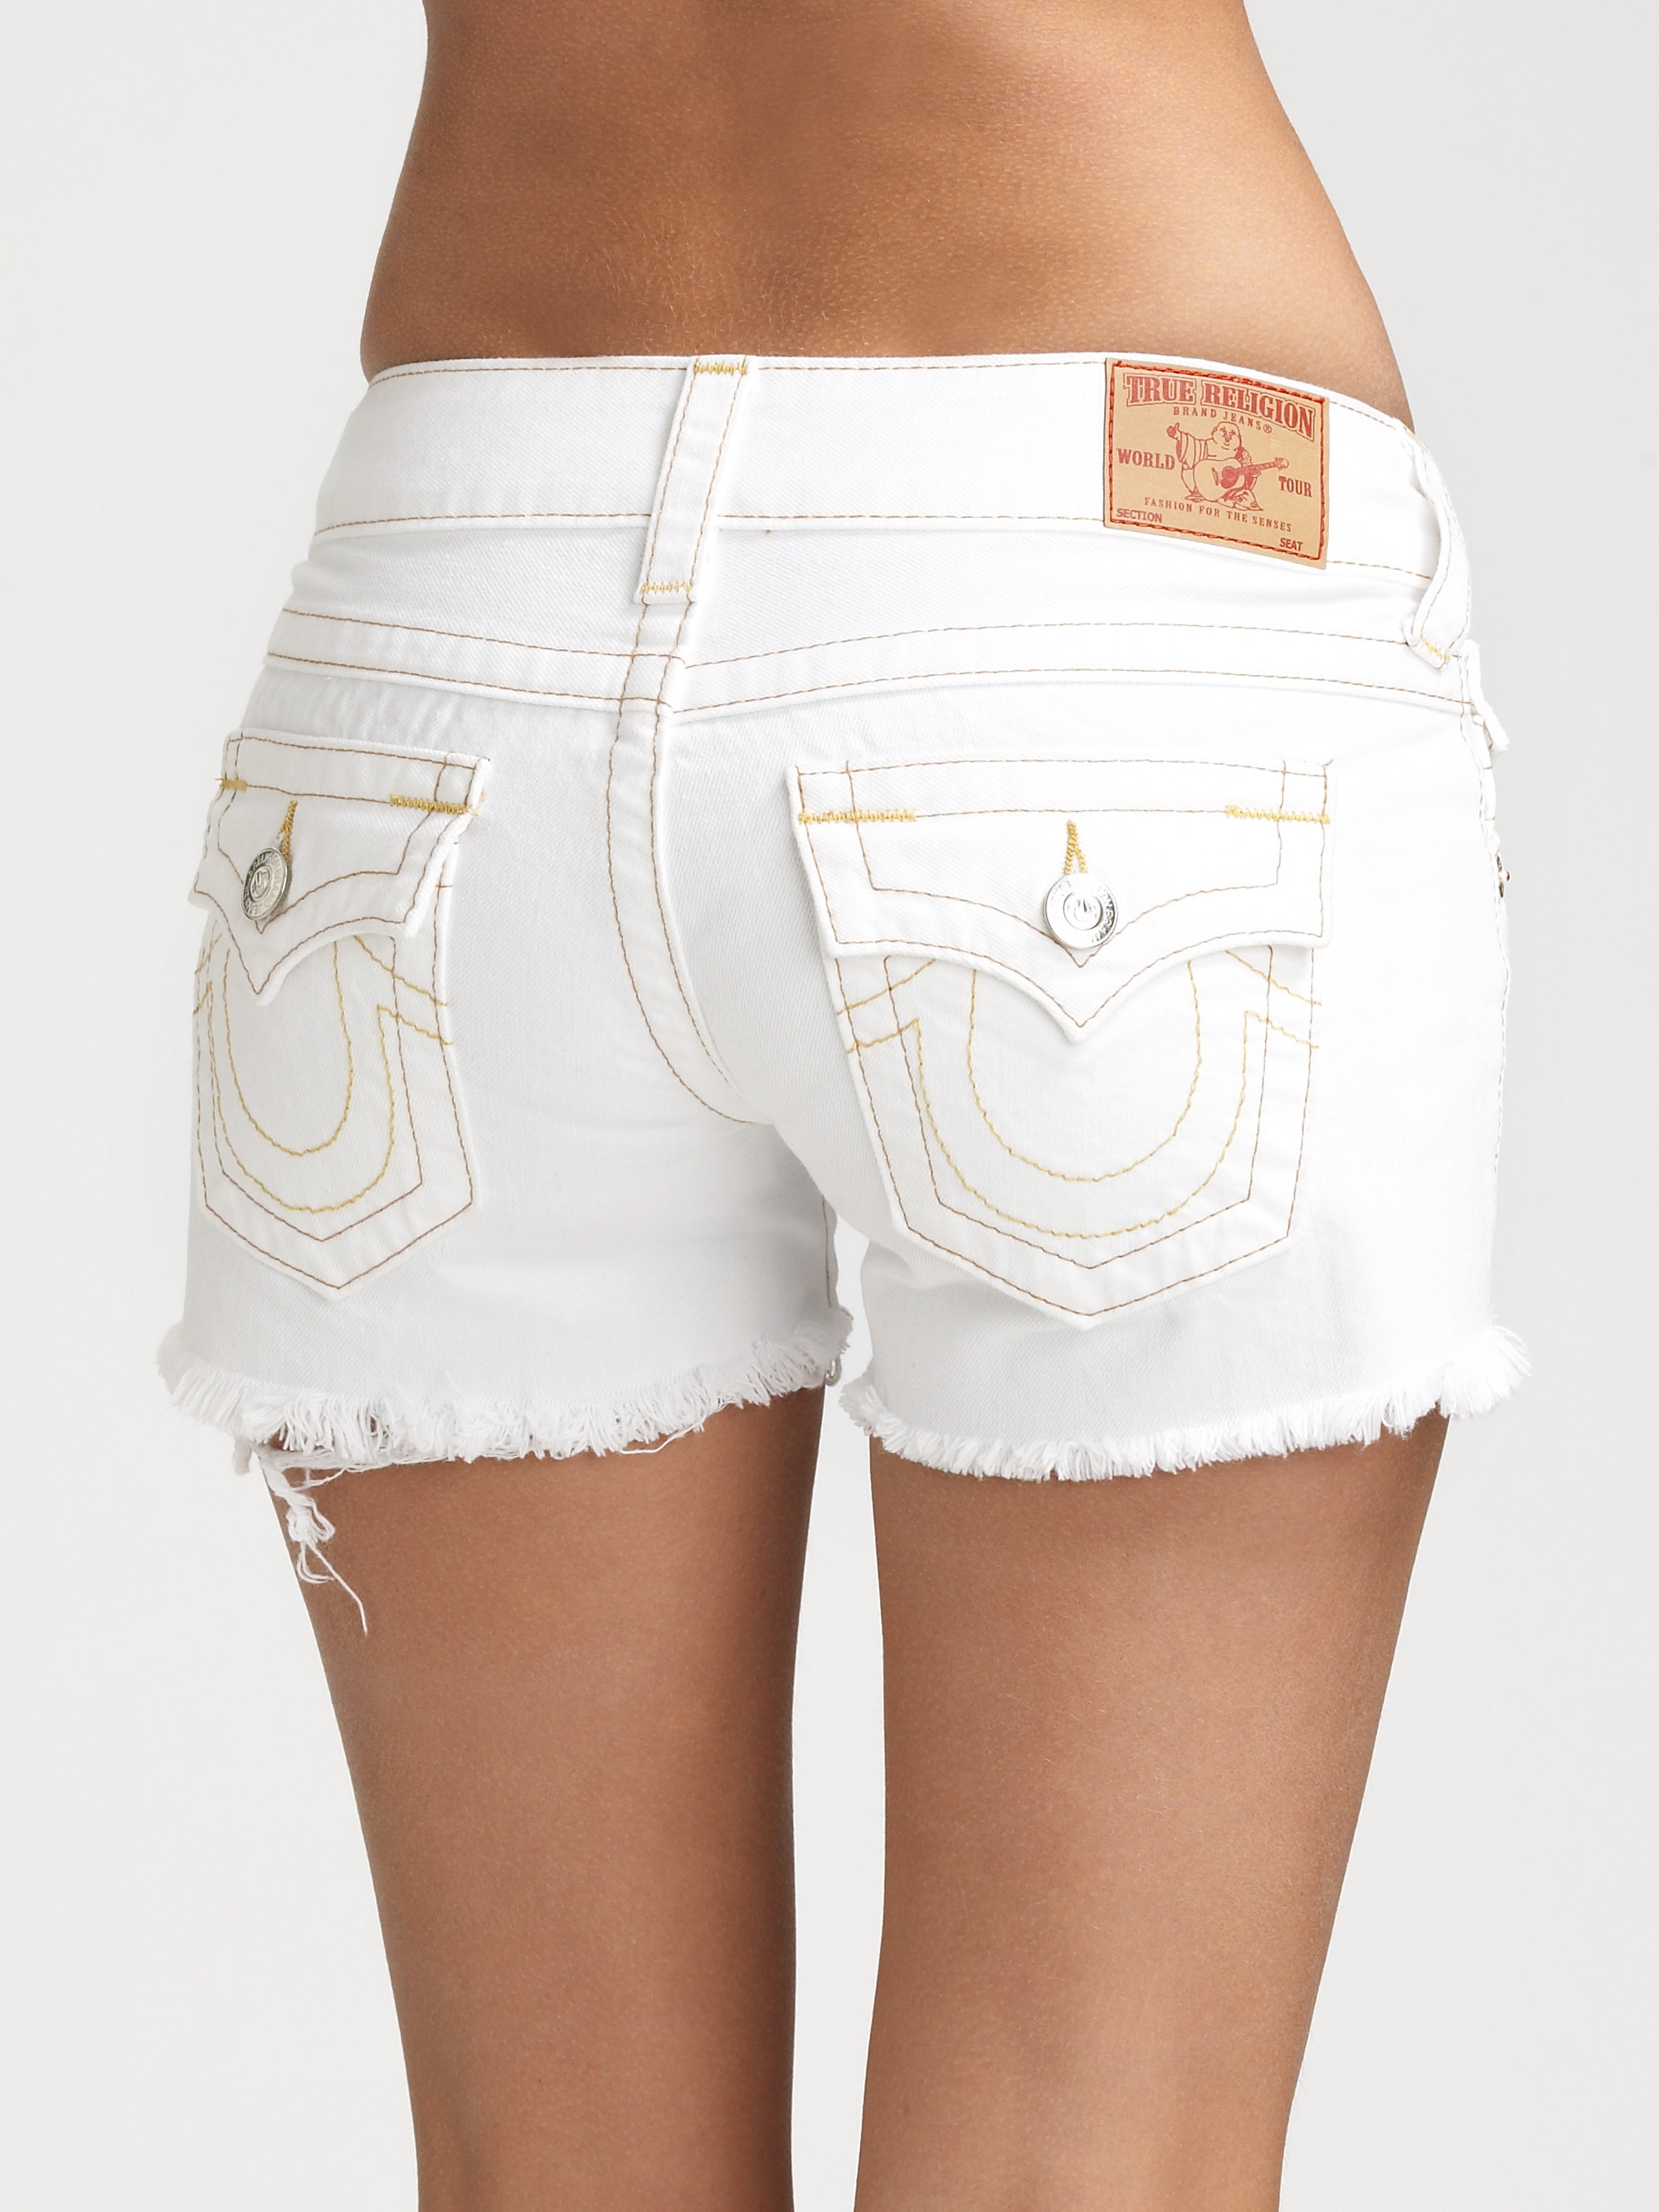 levi's men's slim fit low rise zip fly stretch shorts white bull denim see more like this Levis Signature Women Shorts Jeans White Denim Bermuda Size 16 Misses Pre-Owned.